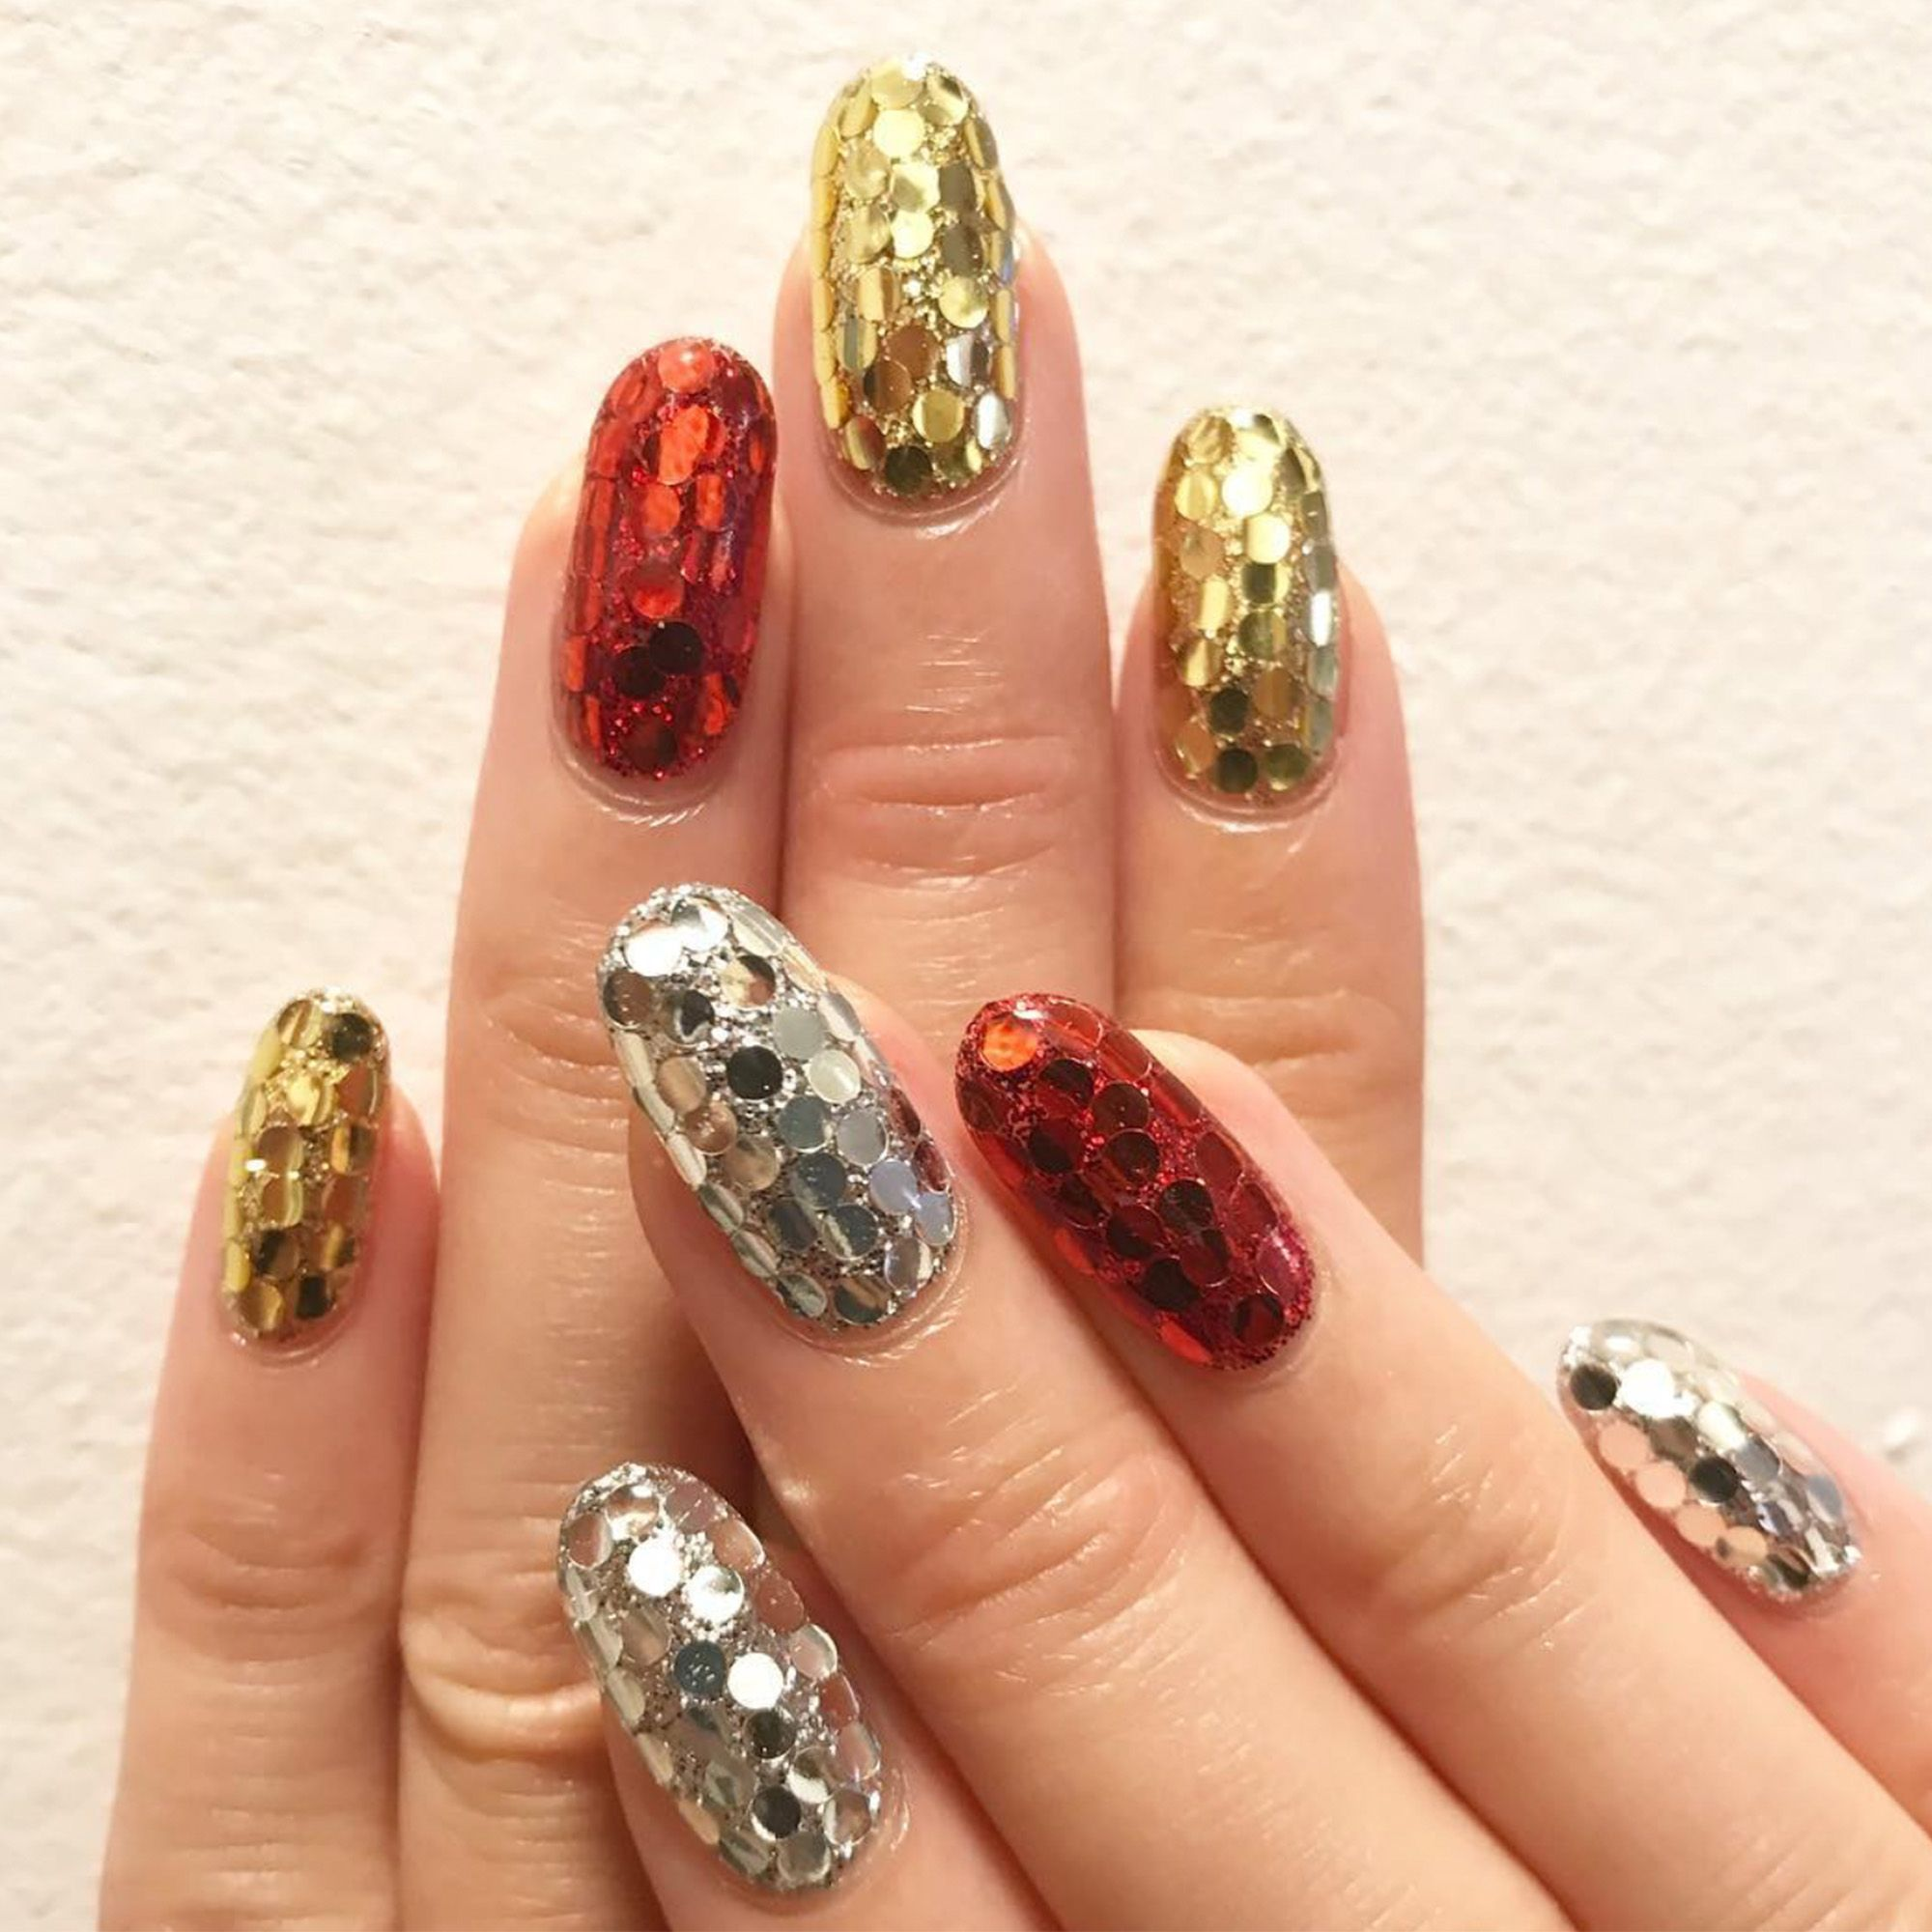 21 Glitter Nail Art Designs Sparkly Ideas For Chic Glitter Manicures